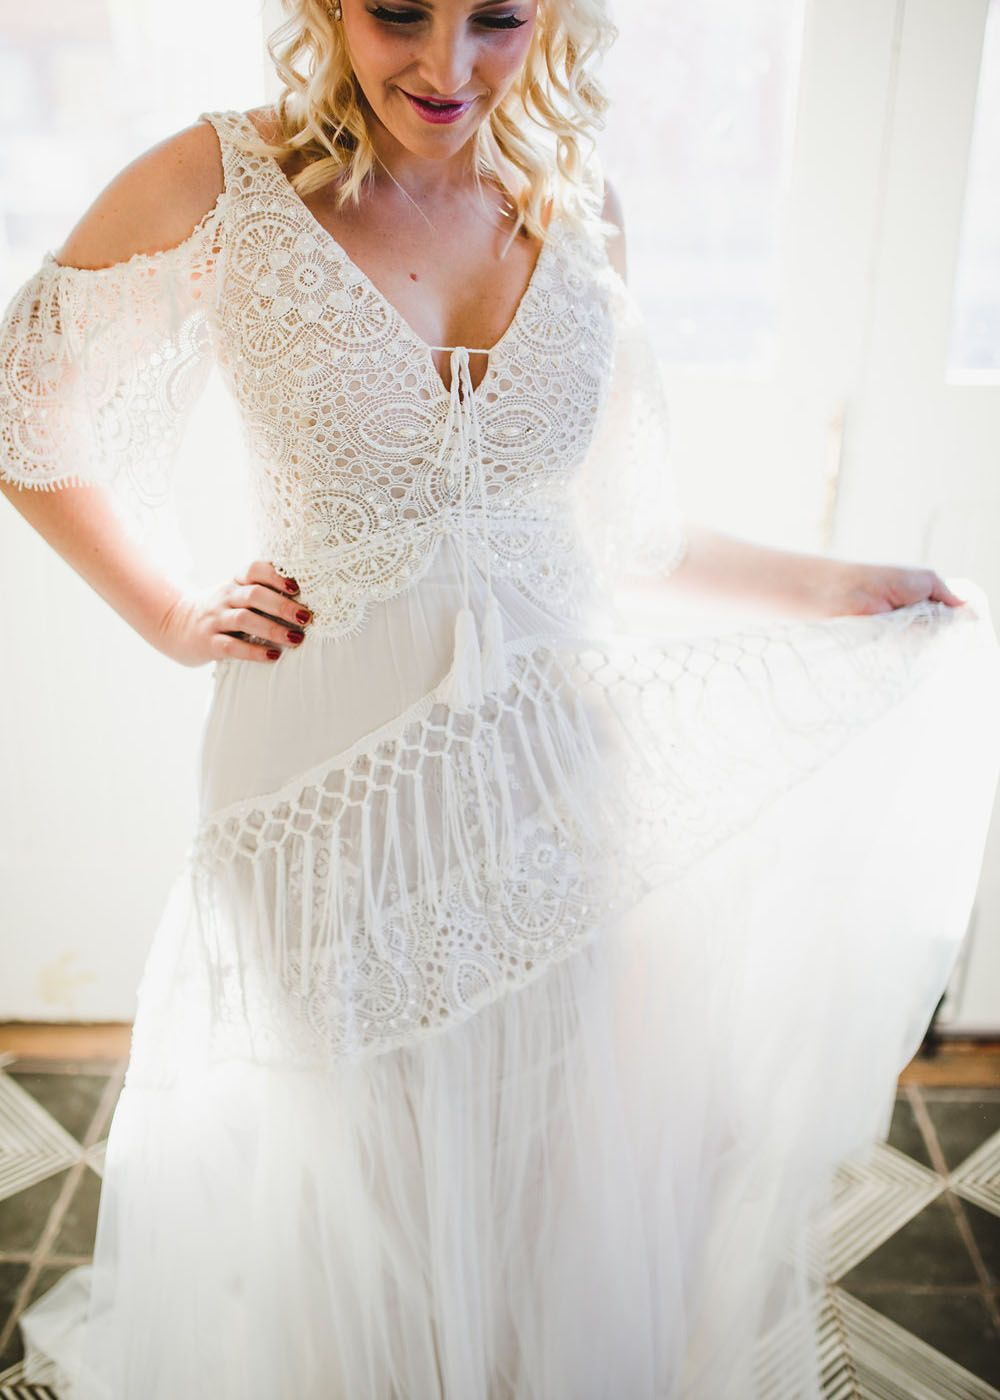 Bohemian Curves By Rish New Plus Size Collection Exclusive To A Be Bridal Shop Green Wedding Shoes Best Wedding Dresses Curvy Wedding Dress Indie Wedding Dress